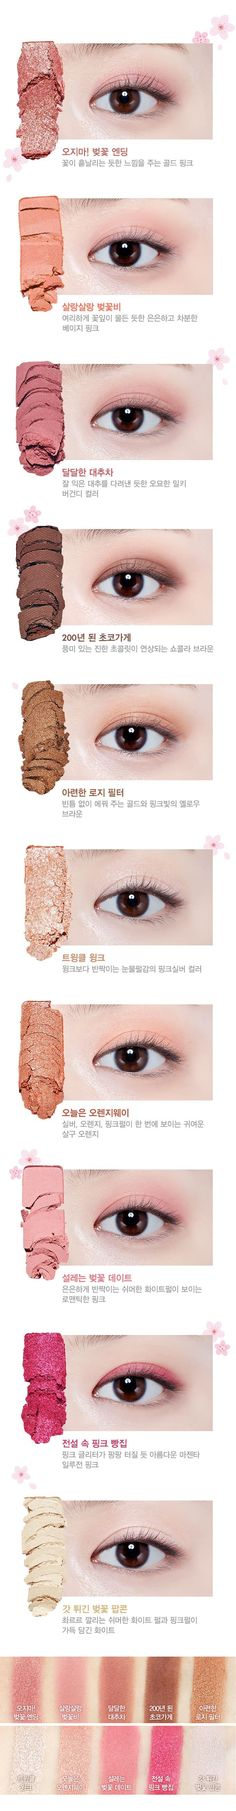 Play Color Eyes Cherry Blossom | Etude House #Koreanmakeuptutorials